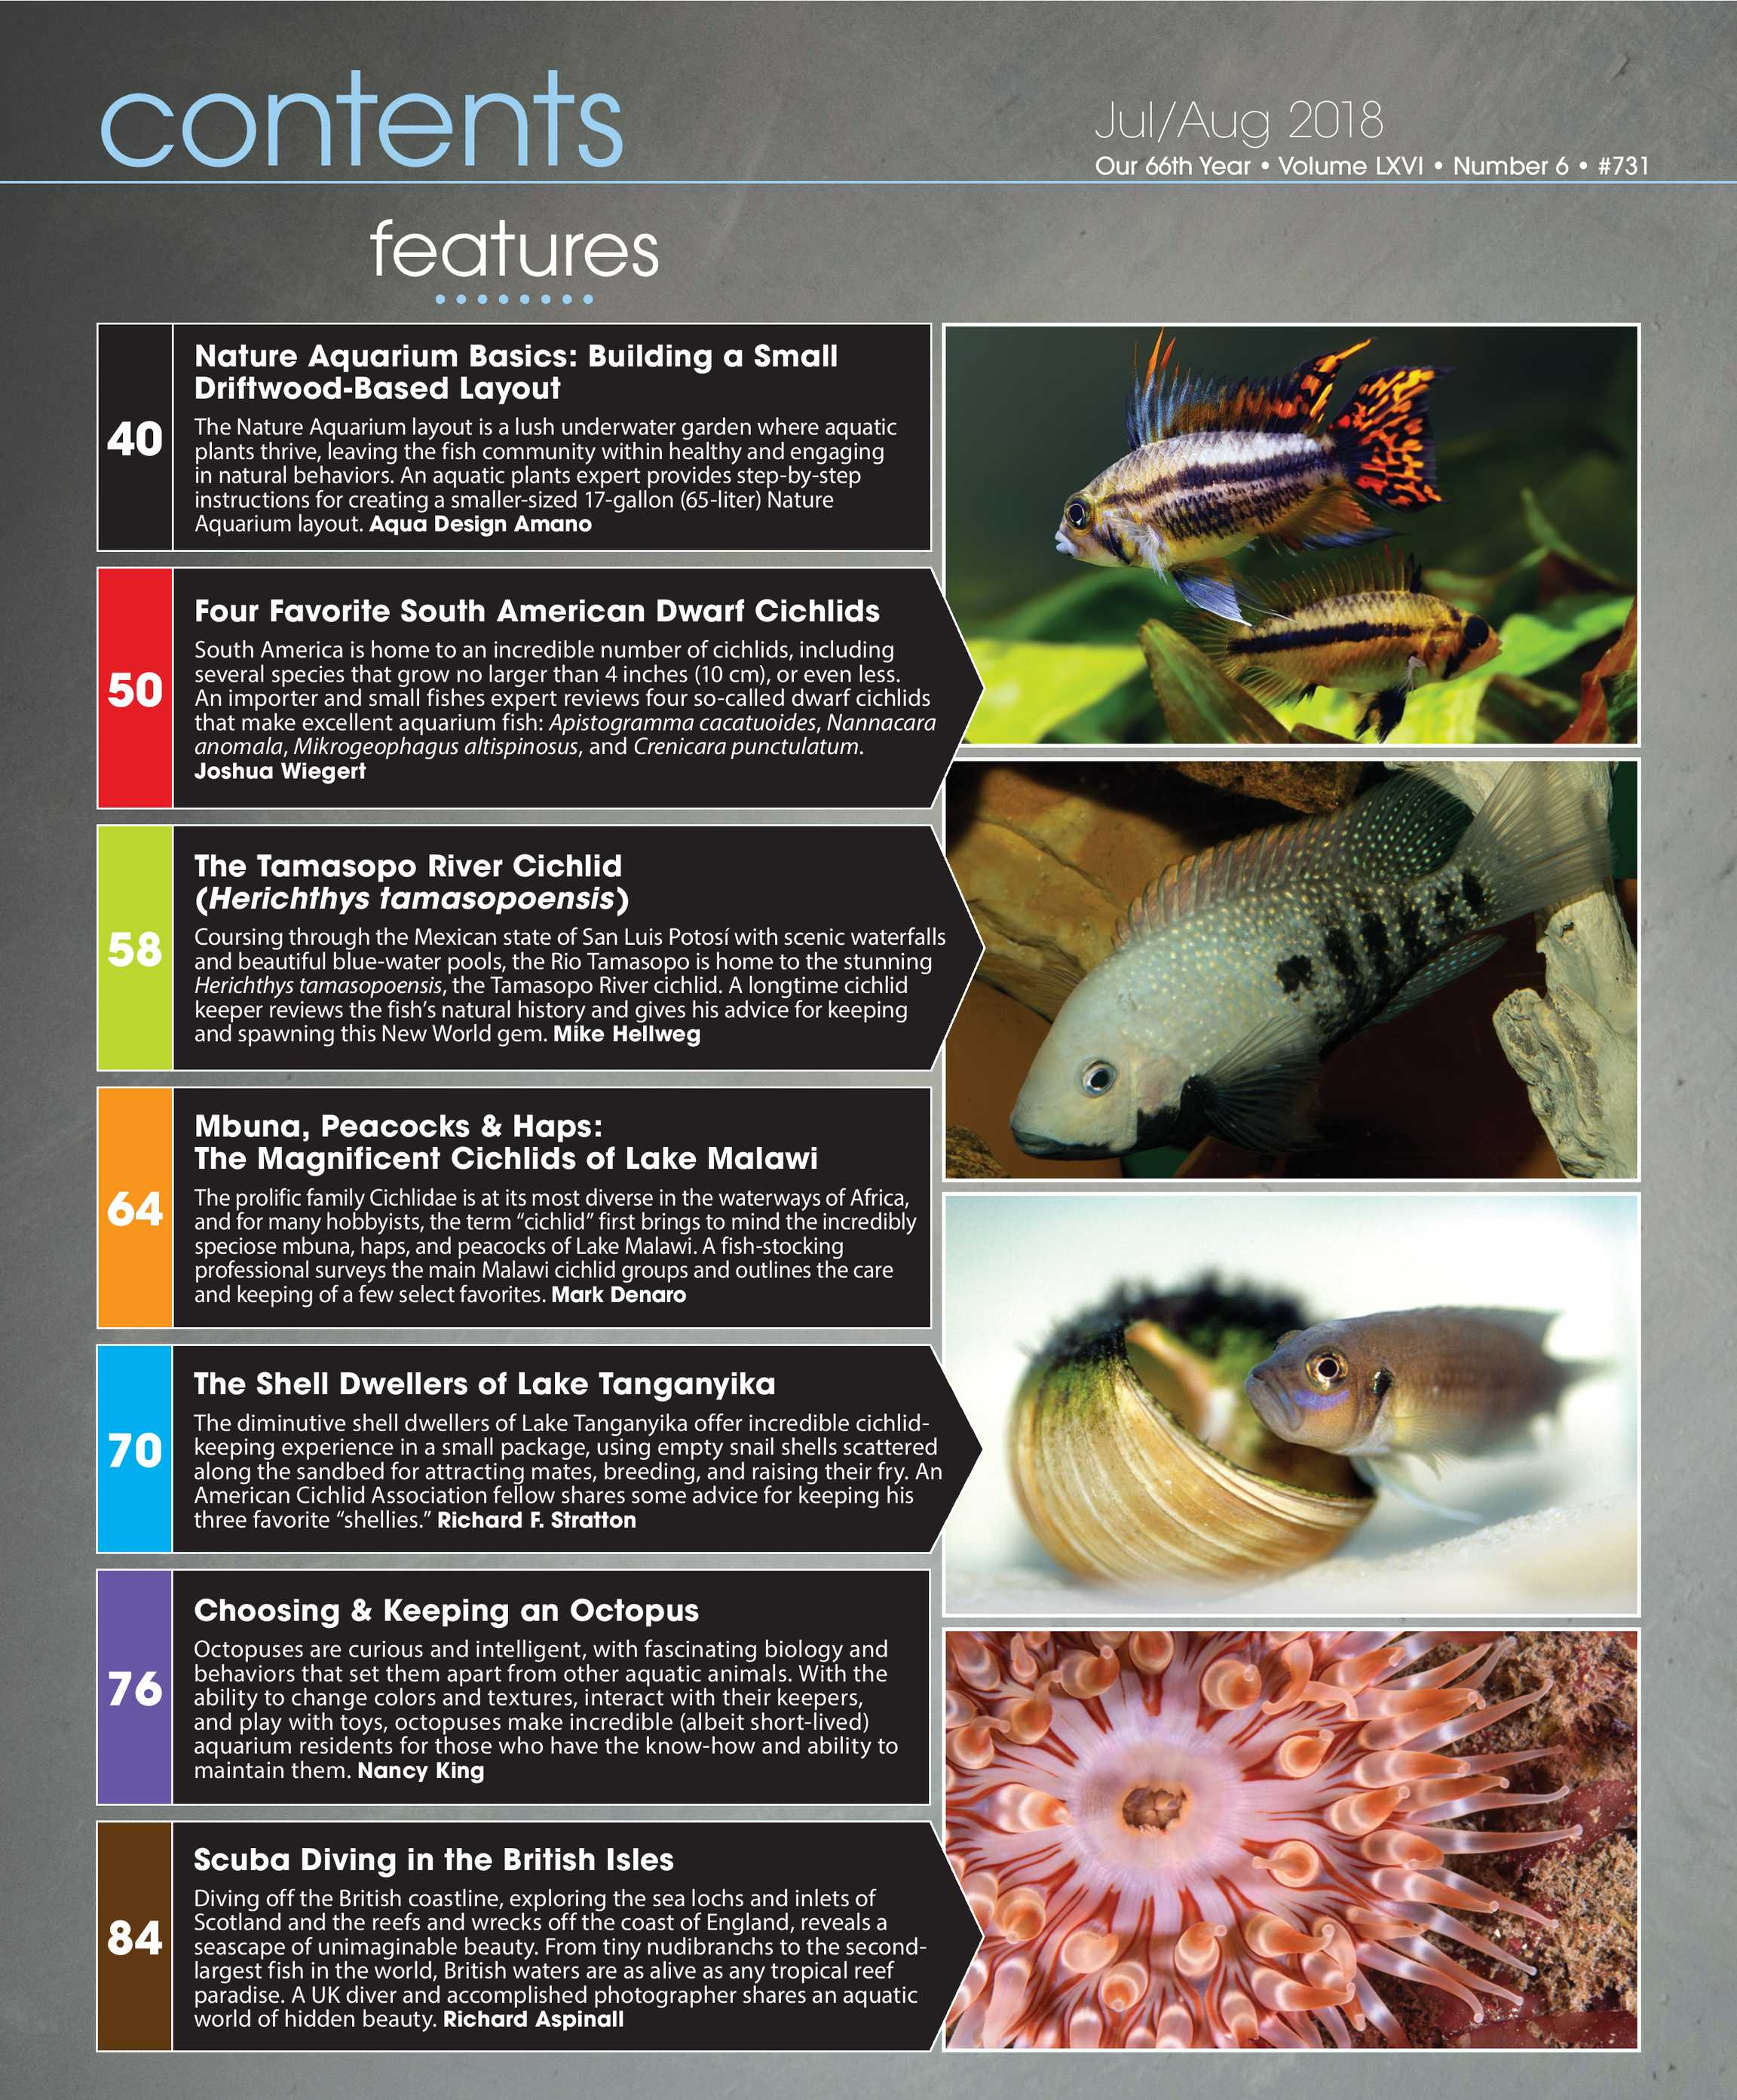 Tropical Fish Hobbyist - Jul/Aug 2018 - page 3 on home cooking designs, home park designs, home gardening designs, home decor designs, home glass designs, home beach designs, home plans designs, home construction designs, home water feature designs, home lake designs, home library designs, home entertainment designs, home school designs, florida home designs, home archery range designs, home art designs, home salt designs, home dog kennel designs, home castle designs, home cafe designs,